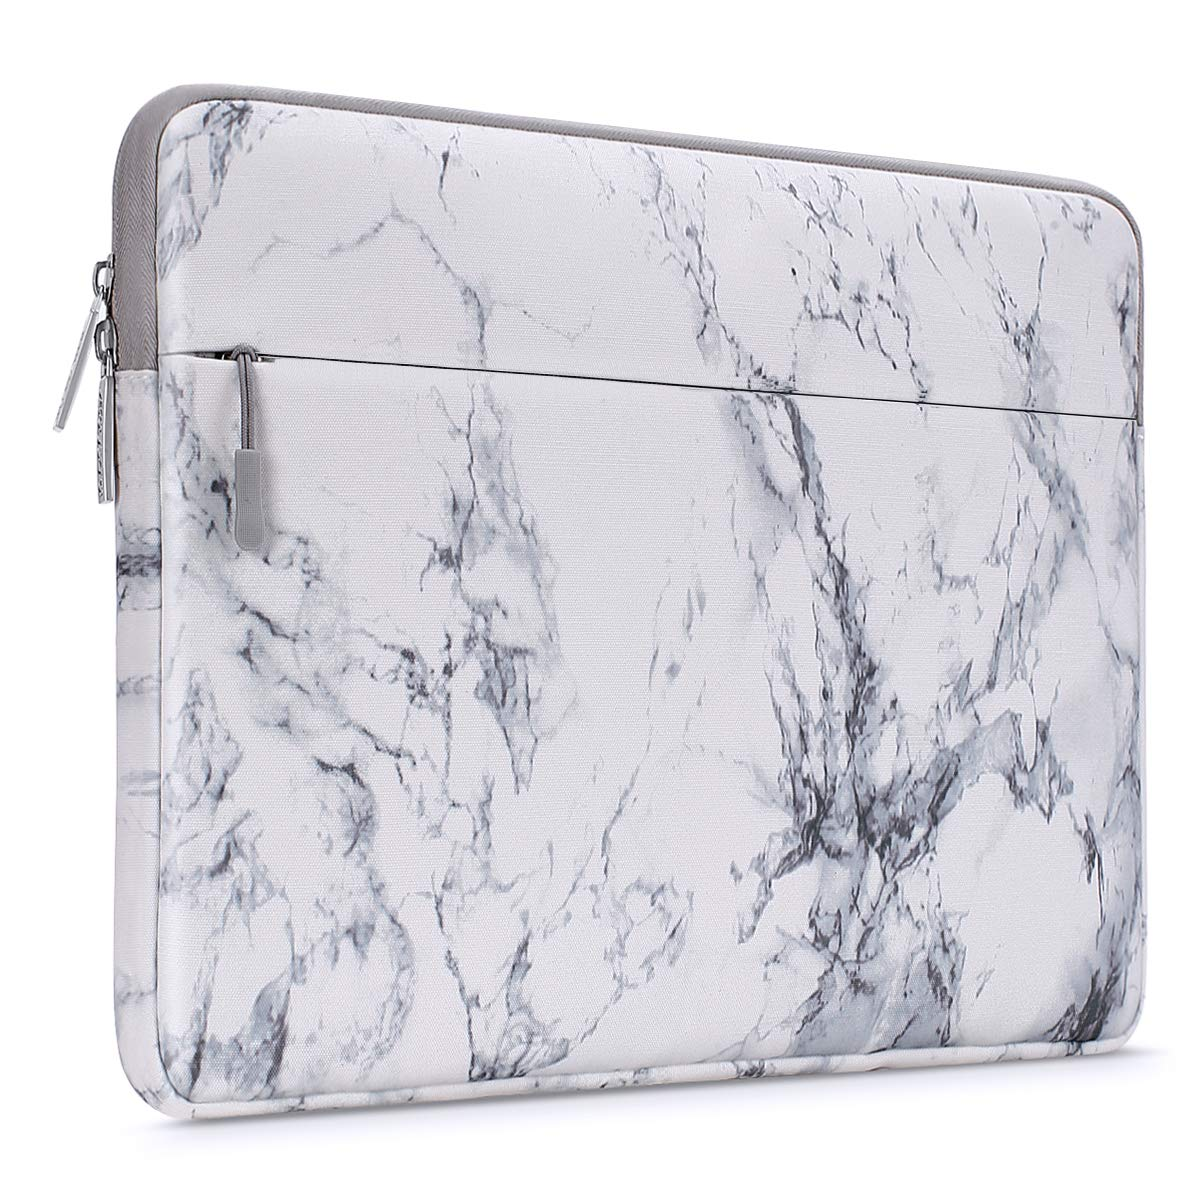 MOSISO Laptop Sleeve Bag Compatible with 13-13.3 inch MacBook Pro, MacBook Air, Notebook Computer with Accessory Pocket, Ultraportable Protective Canvas Marble Pattern Carrying Case Cover, White by MOSISO